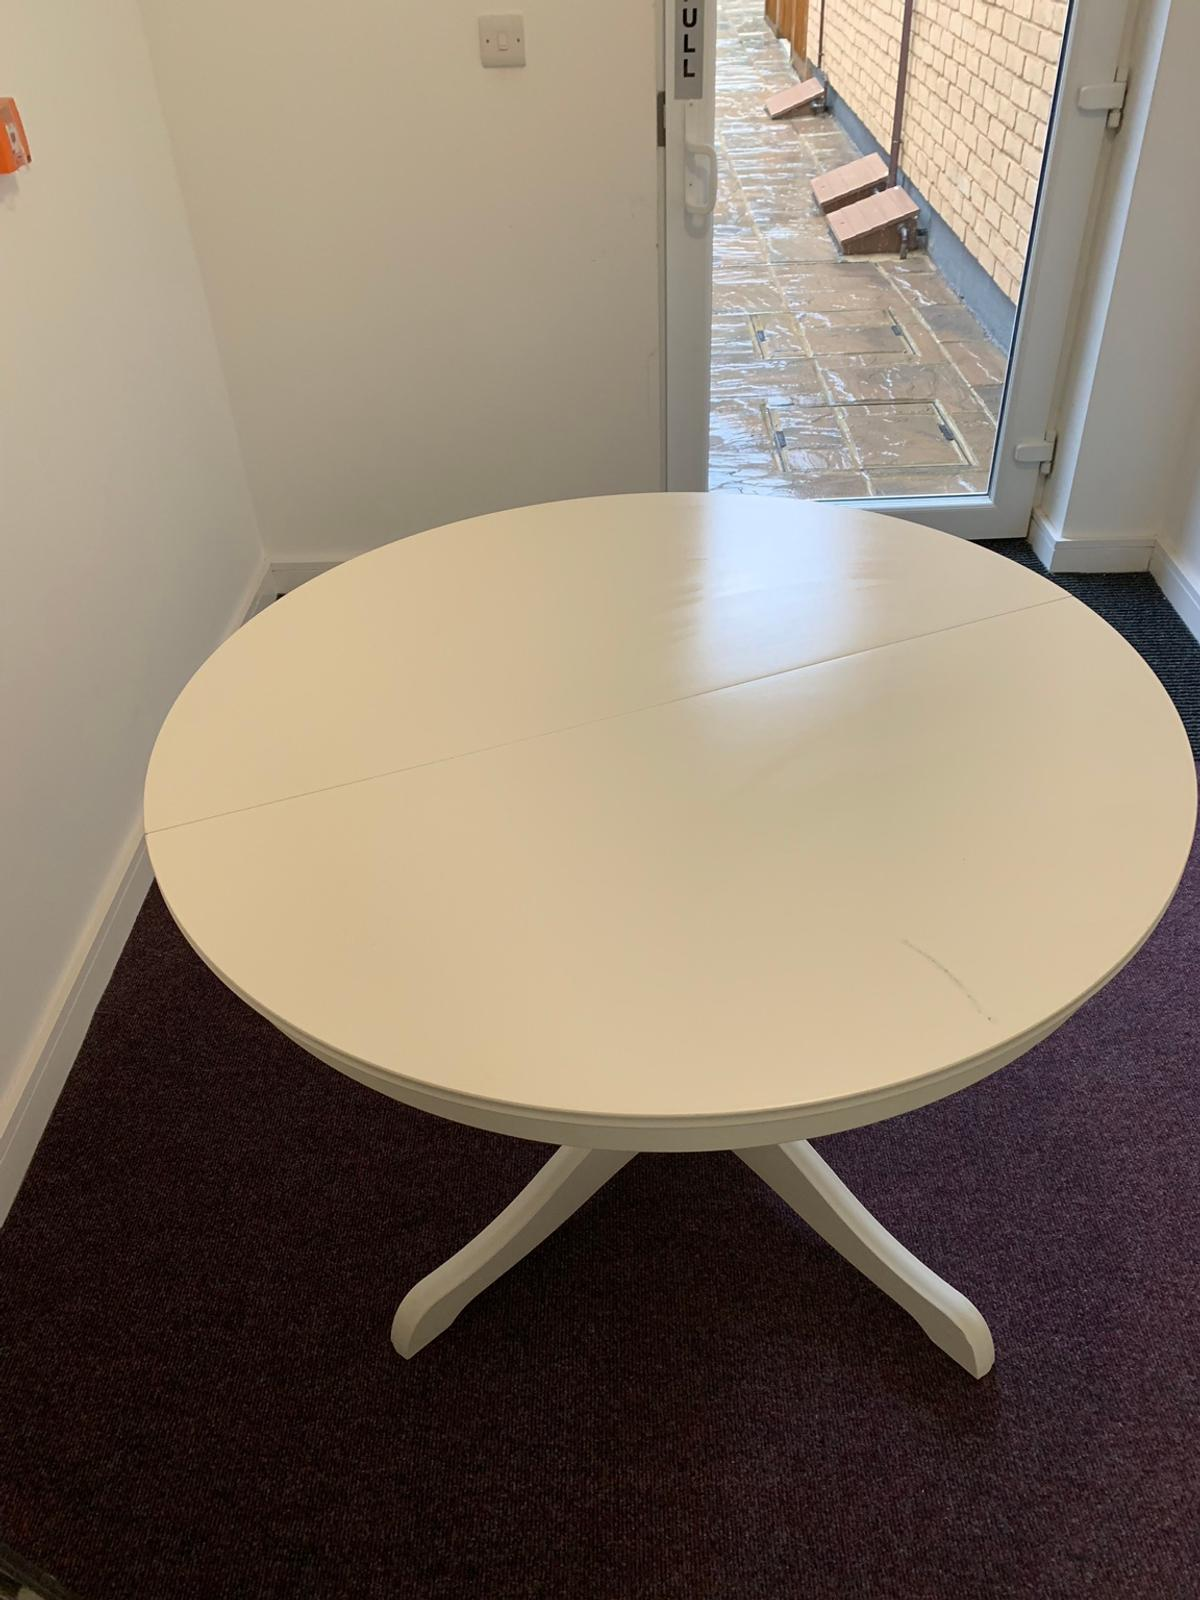 Ikea Round Extendable Dining Table Ingatorp In Sw11 Wandsworth Fur 45 00 Zum Verkauf Shpock De